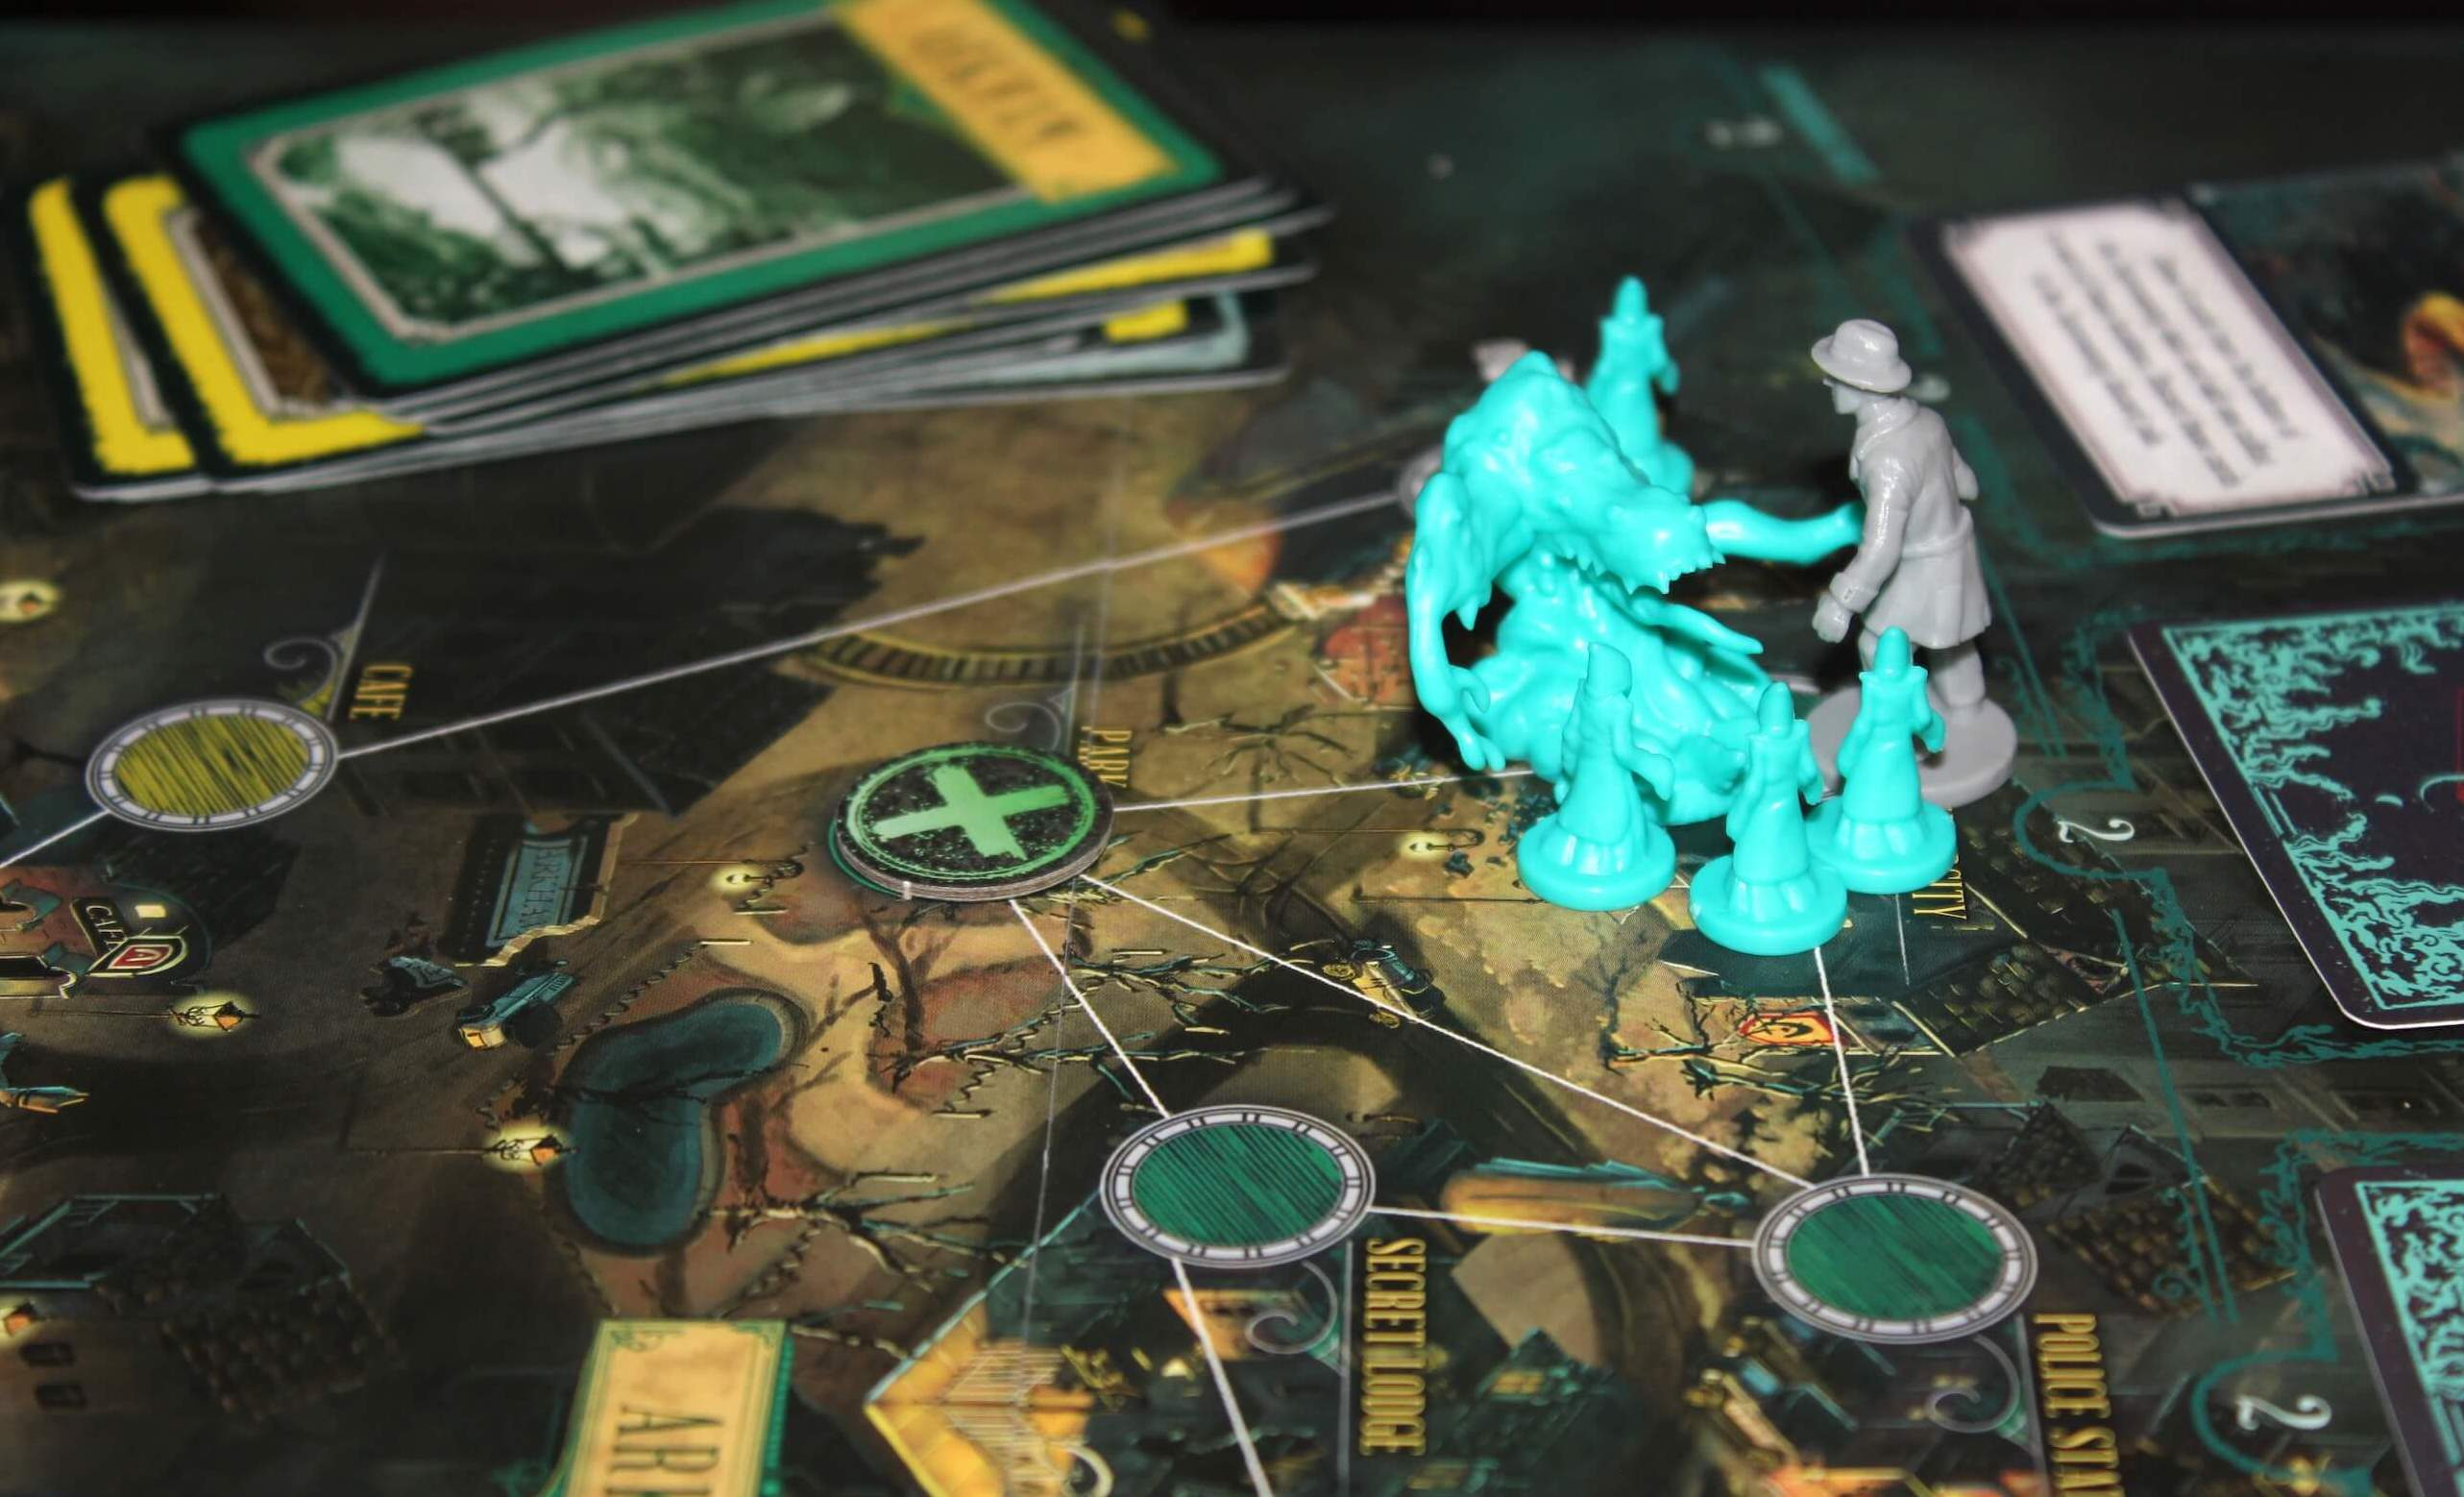 Pandemic: Reign of Cthulhu is a surprisingly solid board game